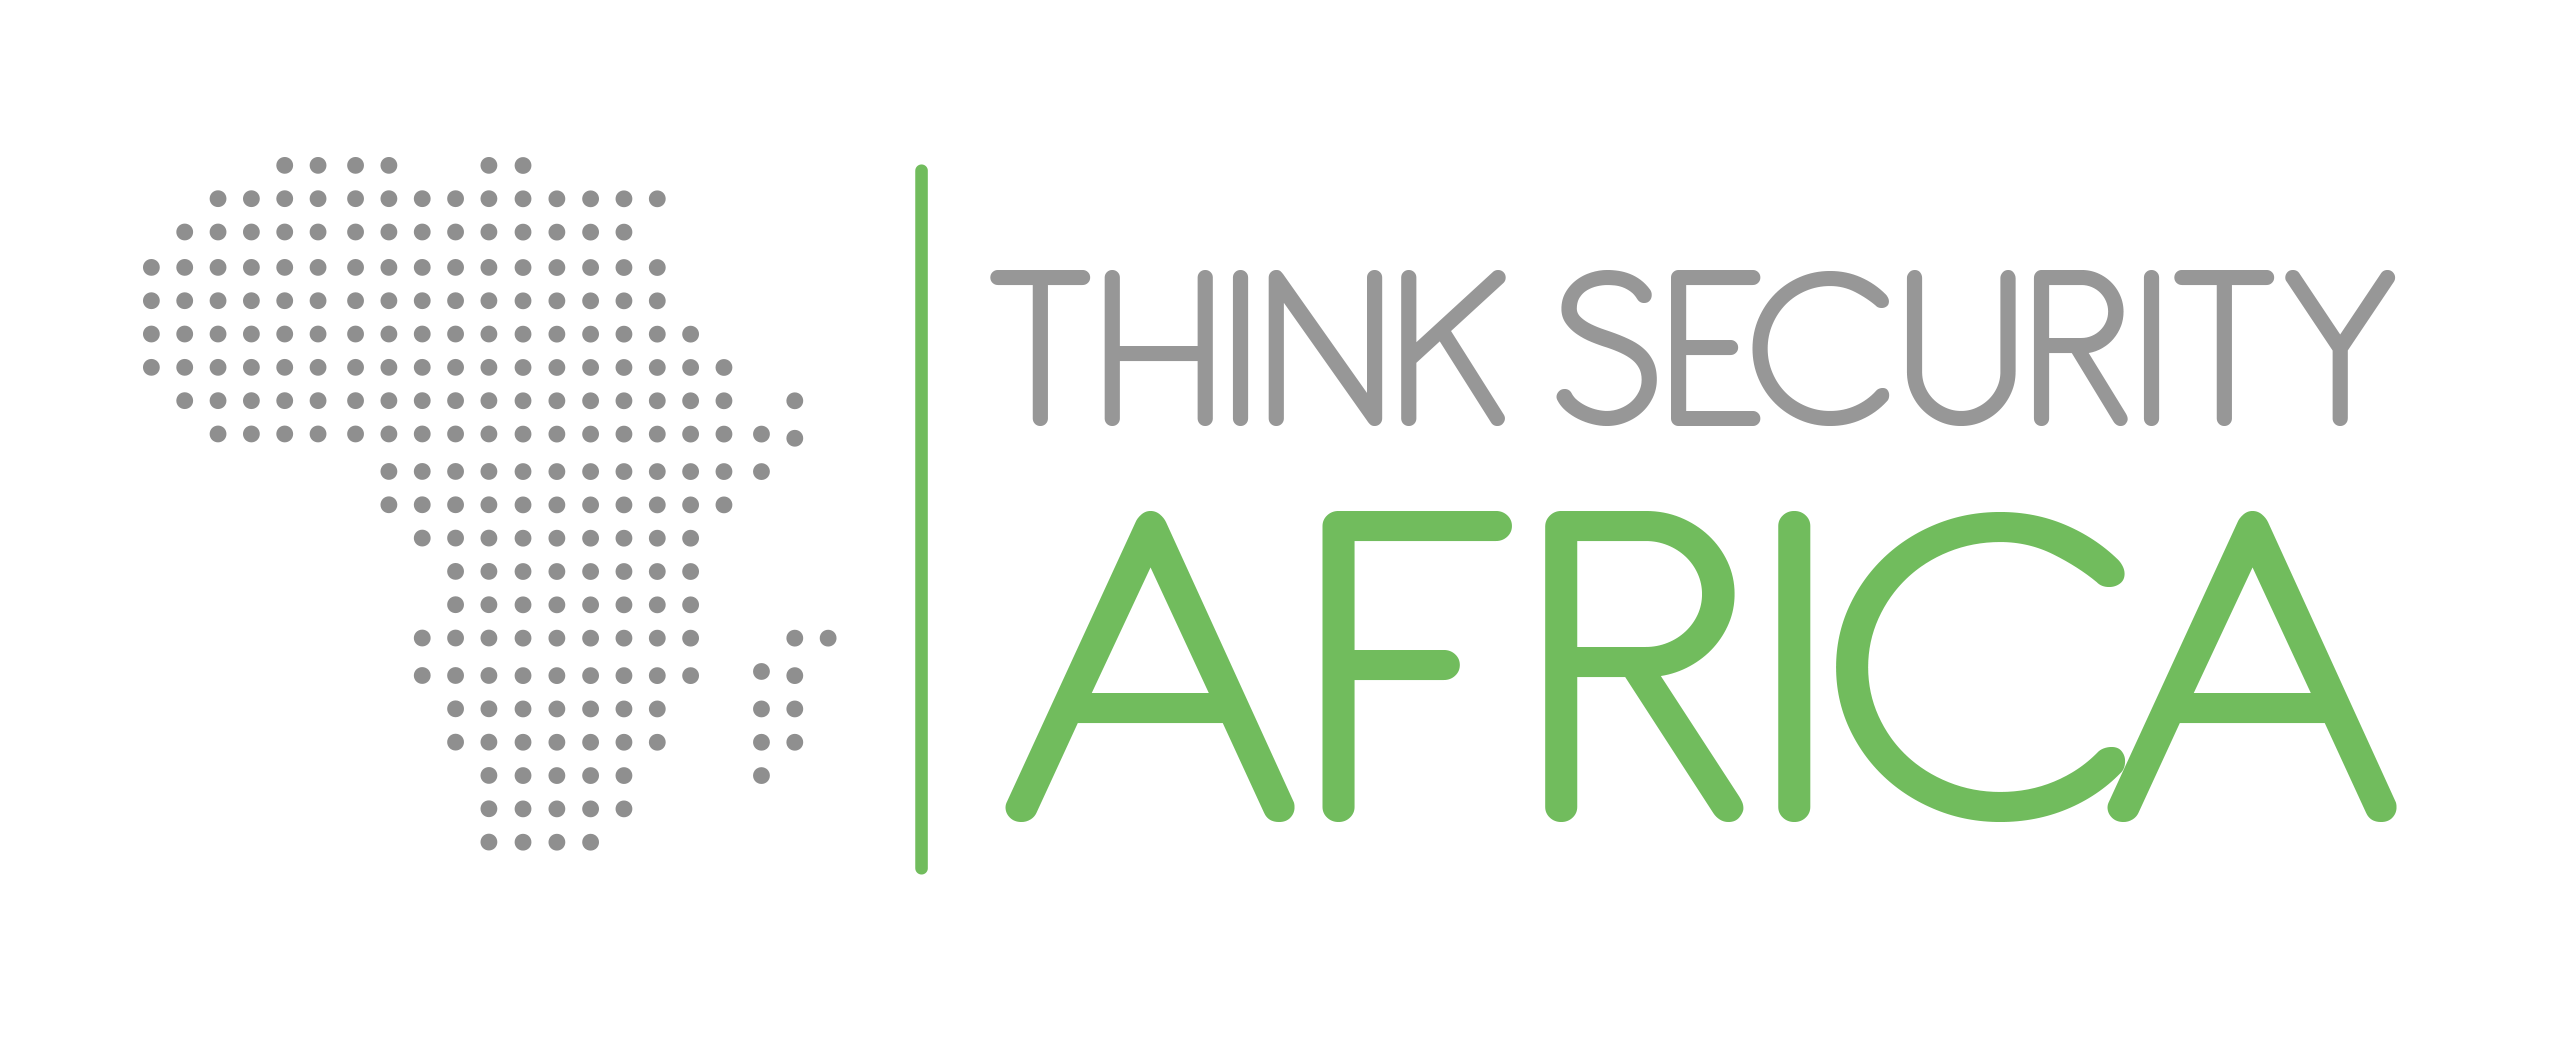 Security in Africa: Structural challenges are reaching crisis point